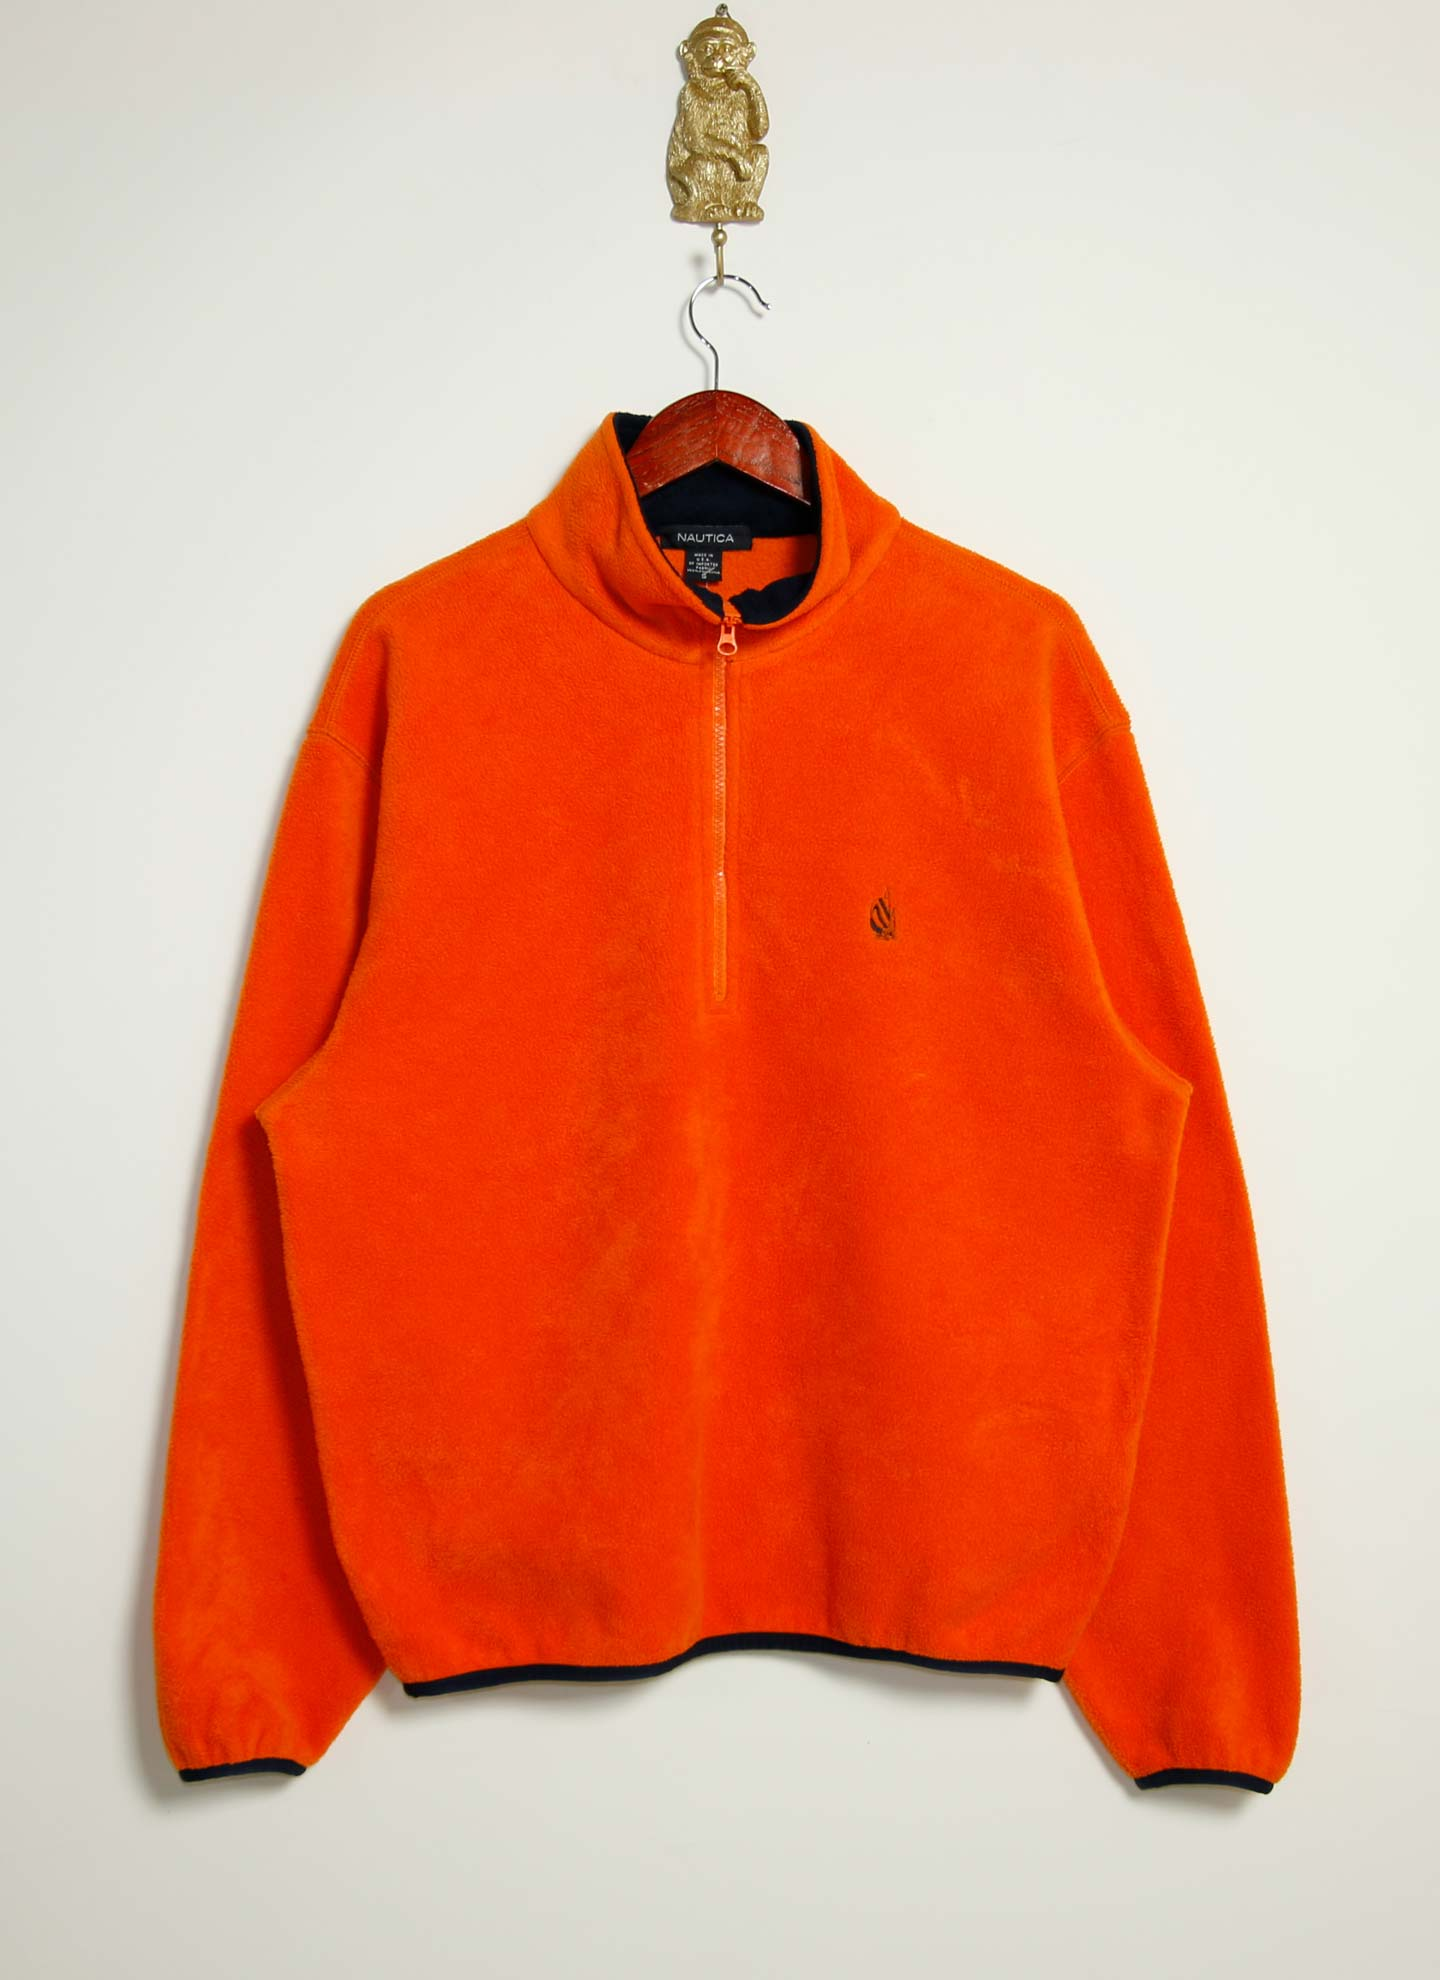 Nautica Fleece